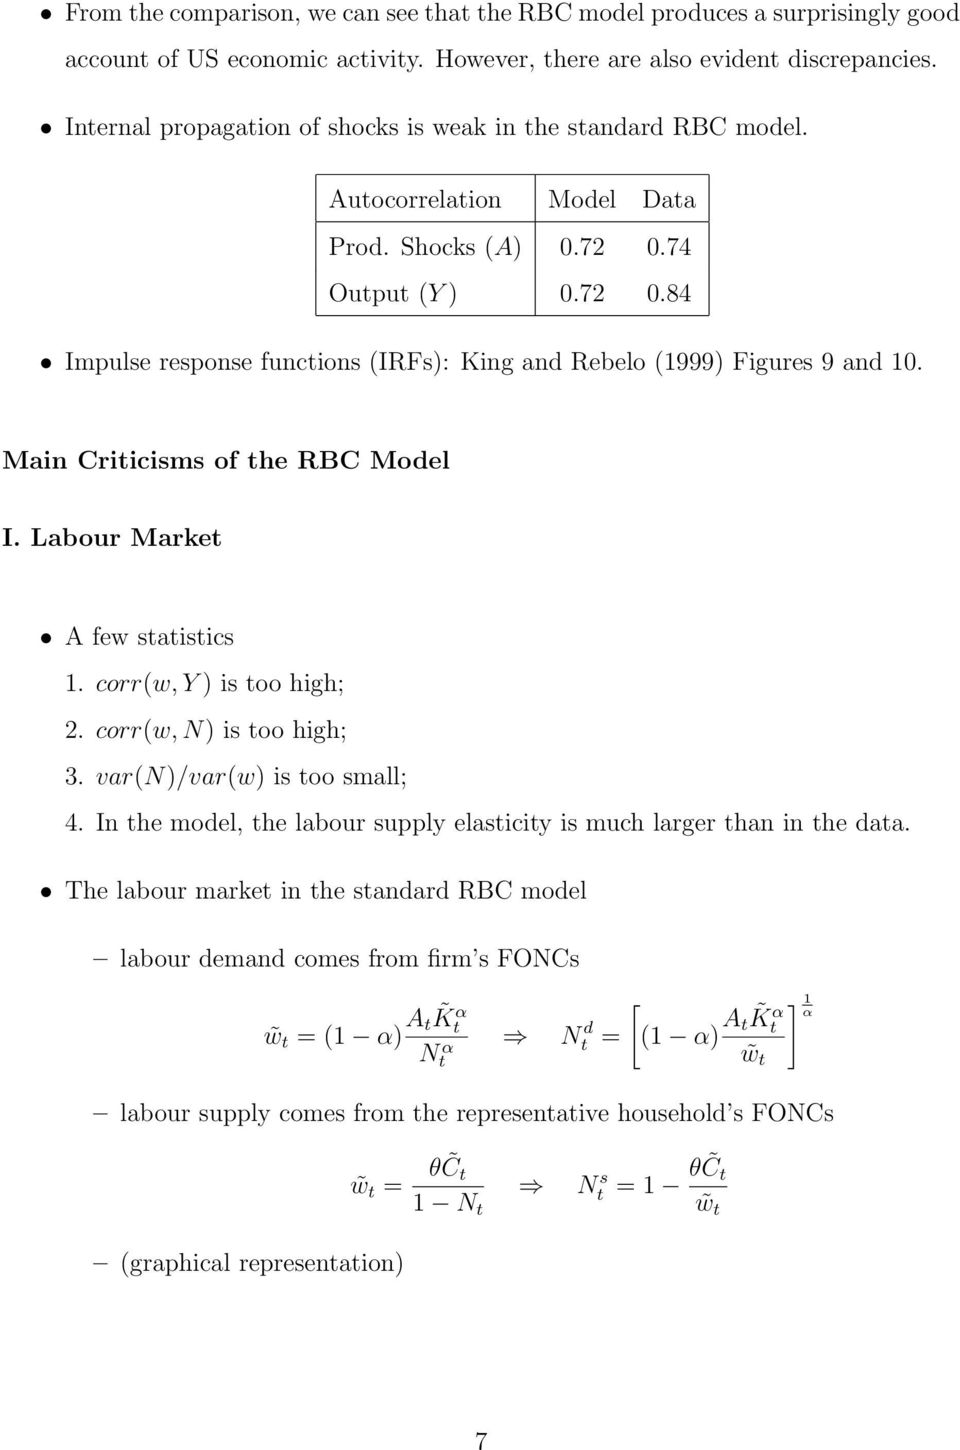 Main Criticisms of the RBC Model I. Labour Market A few statistics 1. corr(w, Y ) is too high; 2. corr(w, N) is too high; 3. var(n)/var(w) is too small; 4.